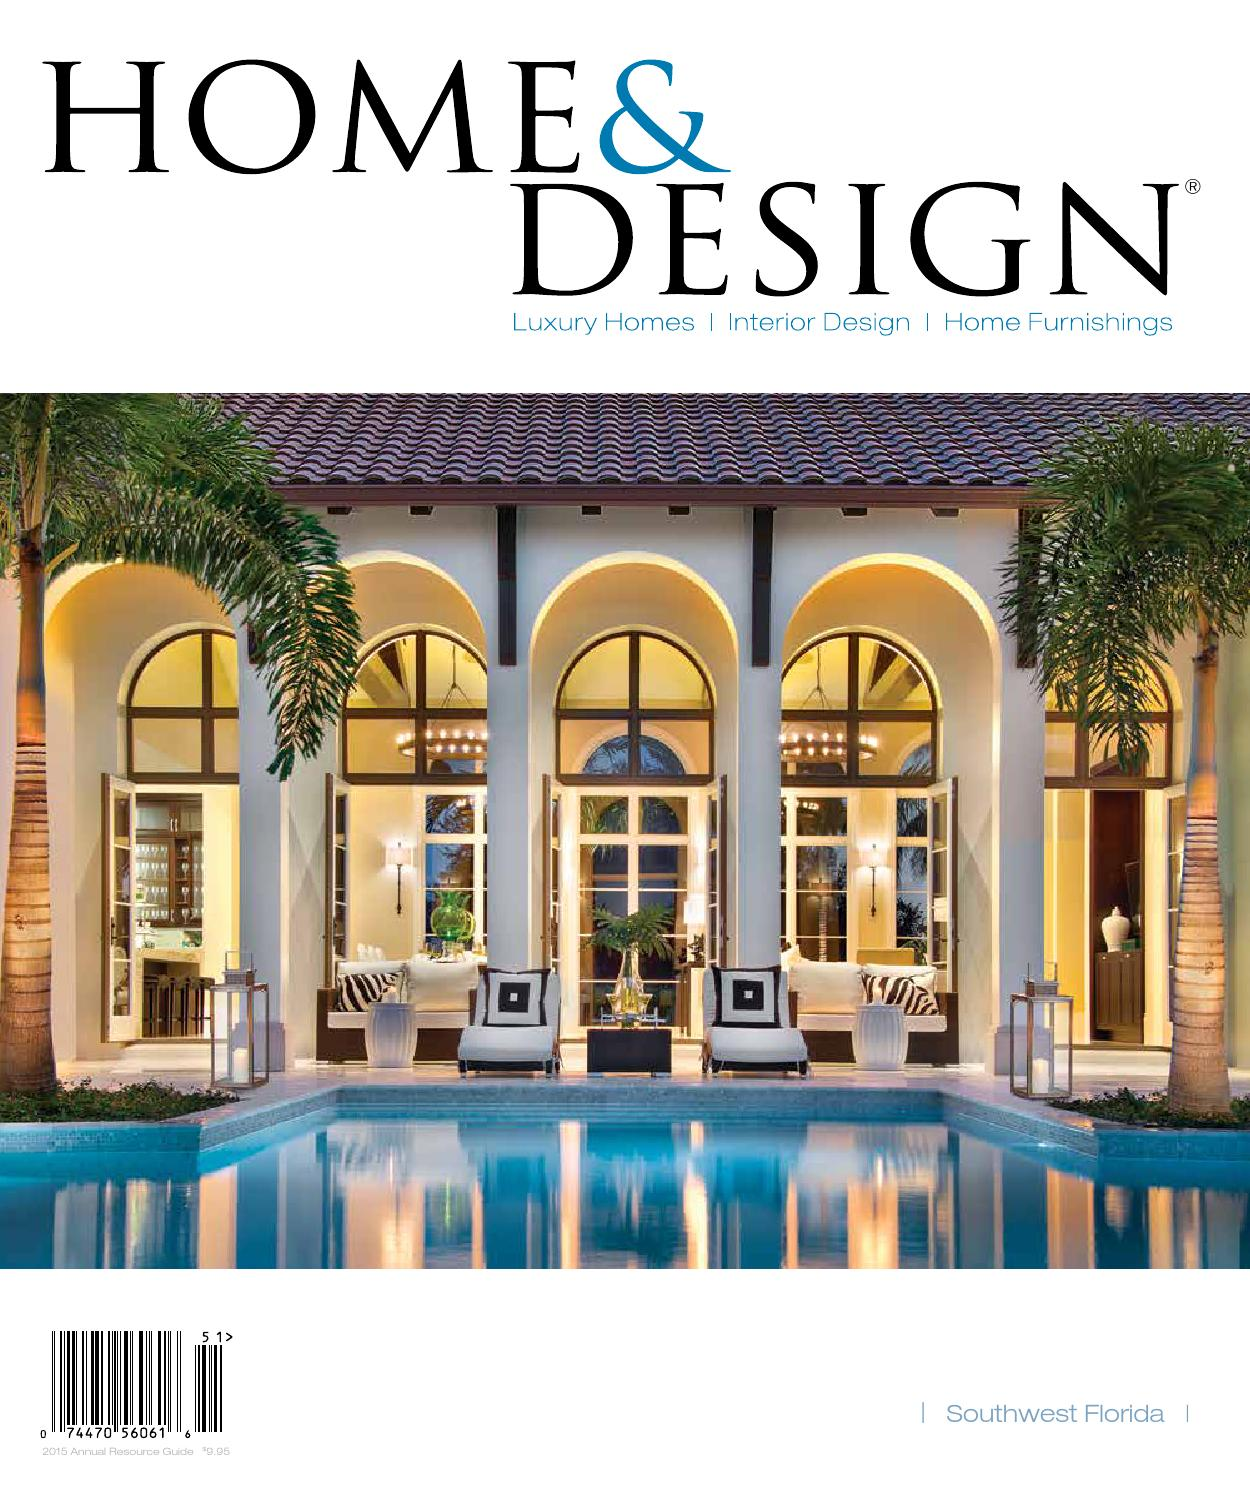 Superior ... Home Design Florida Home Design Magazine Annual Resource Guide 2015  Southwest Florida Edition By Anthony Spano ...